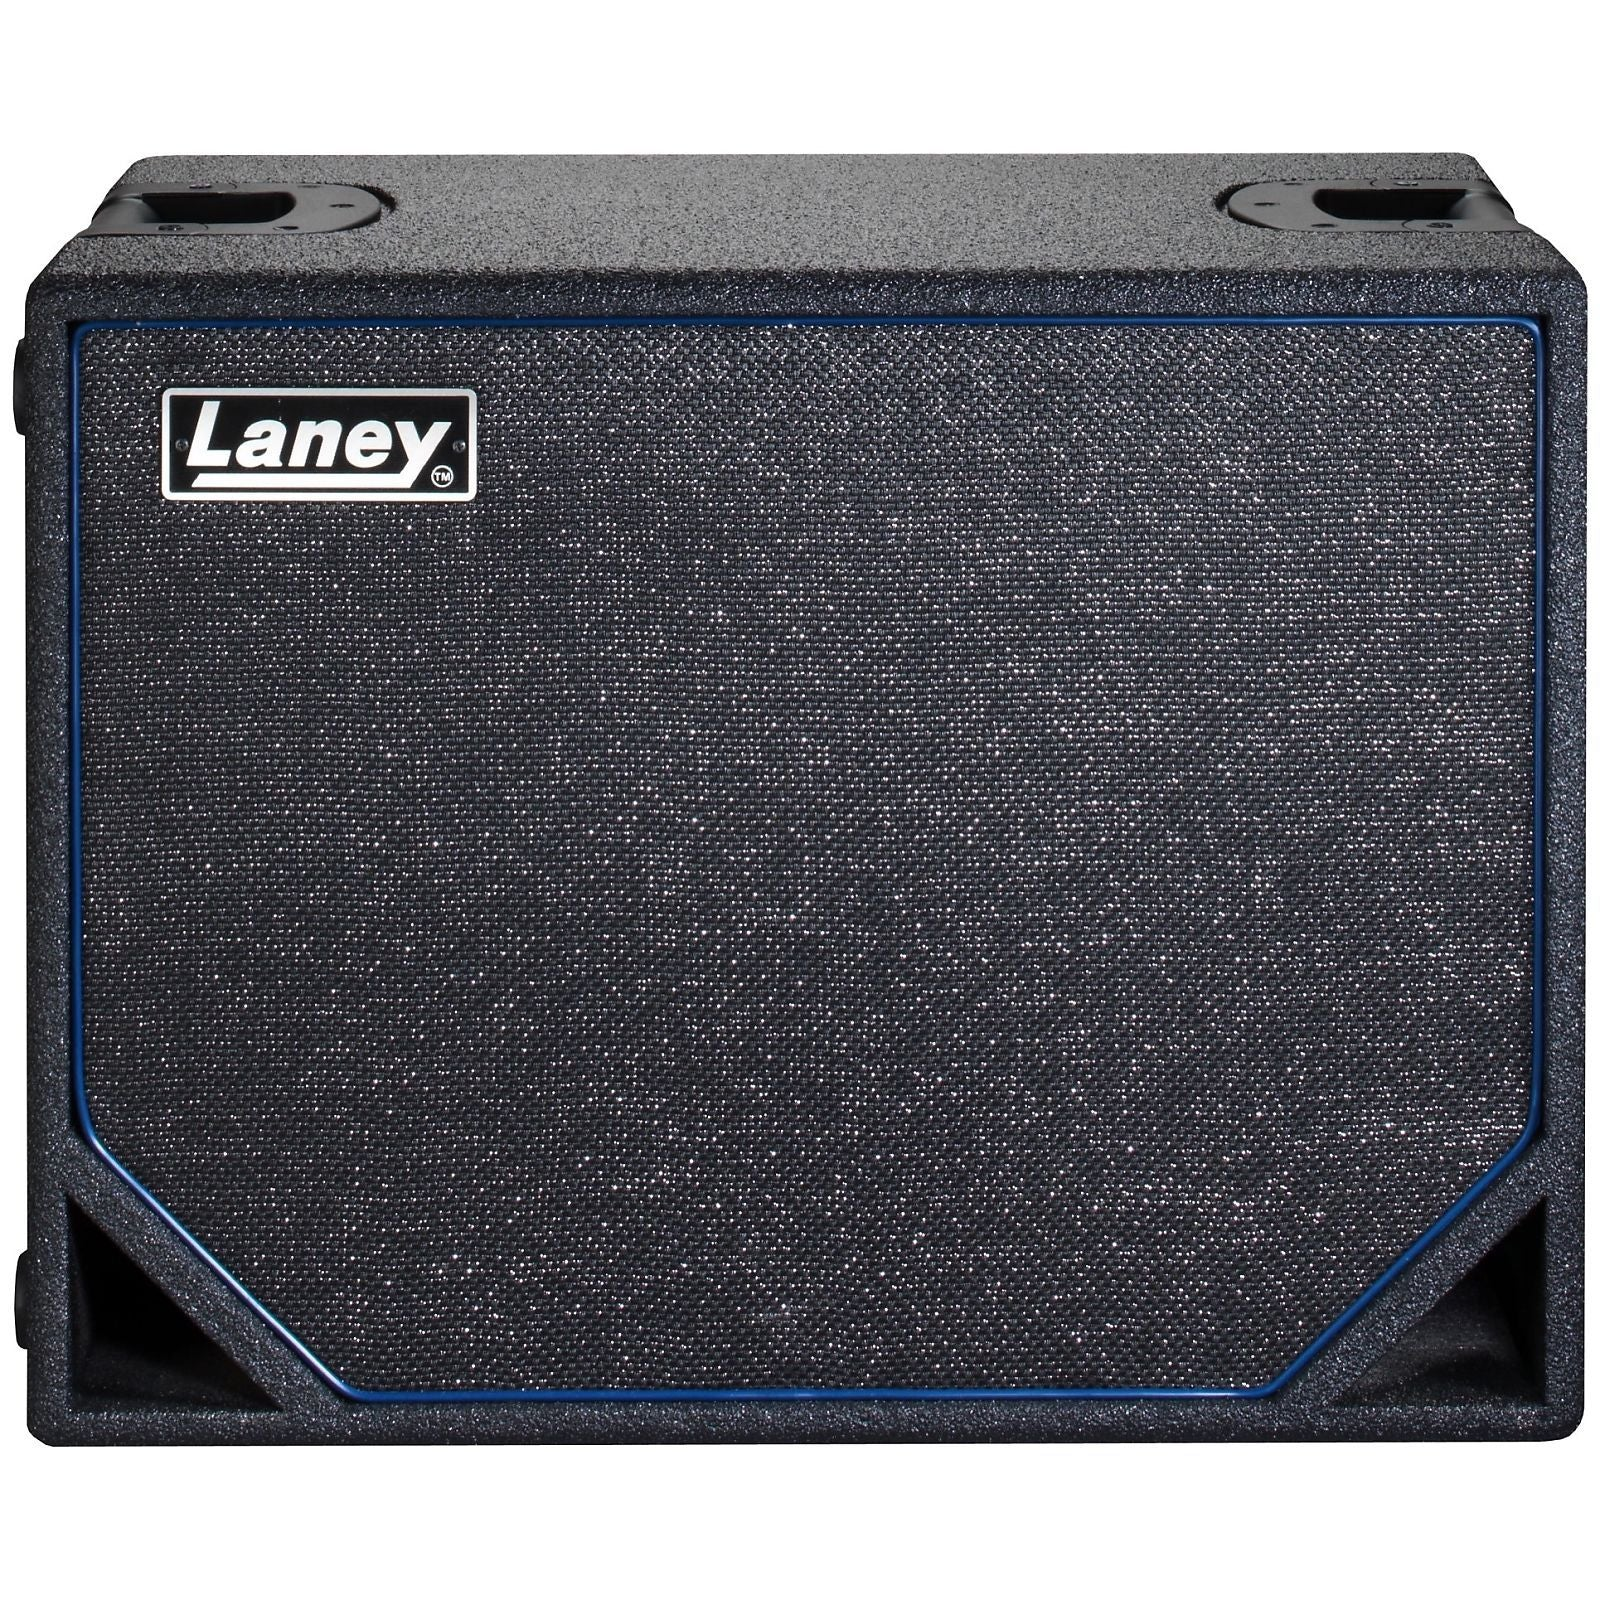 Laney N210 Nexus Bass Speaker Cabinet (400 Watts, 2x10 Inch), 8 Ohms